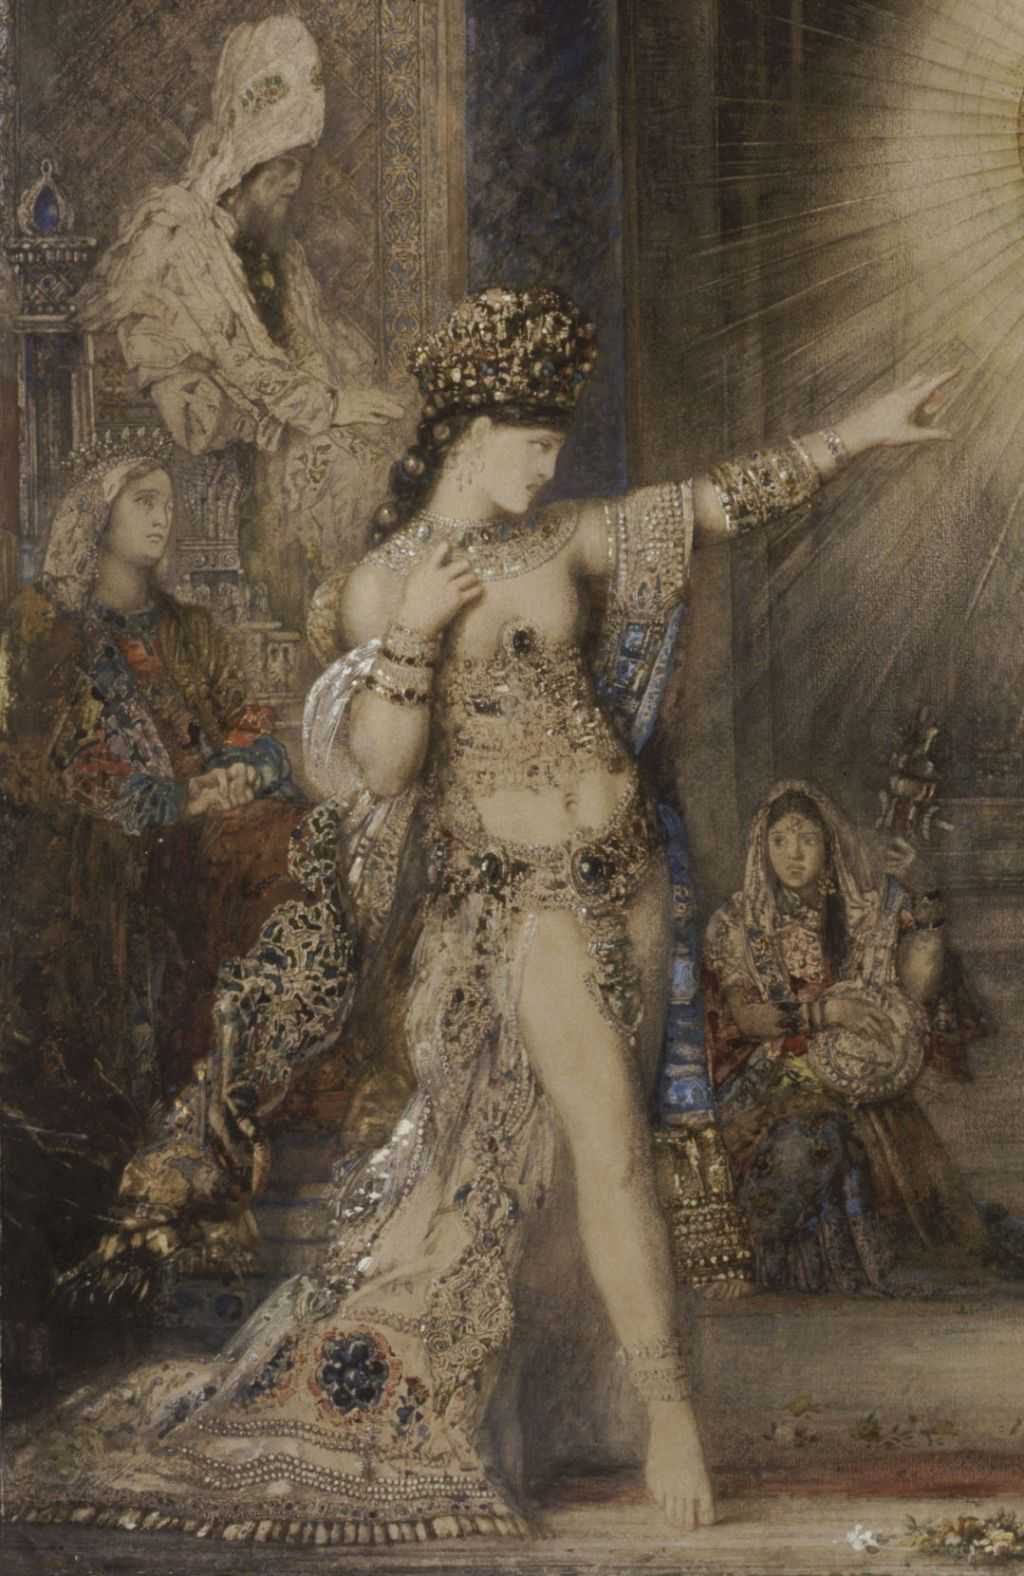 Gustave Moreau (1826–1898), The Apparition (detail) (c 1876), watercolour on paper, 106 x 72 cm, Musée d'Orsay, Paris. Wikimedia Commons.